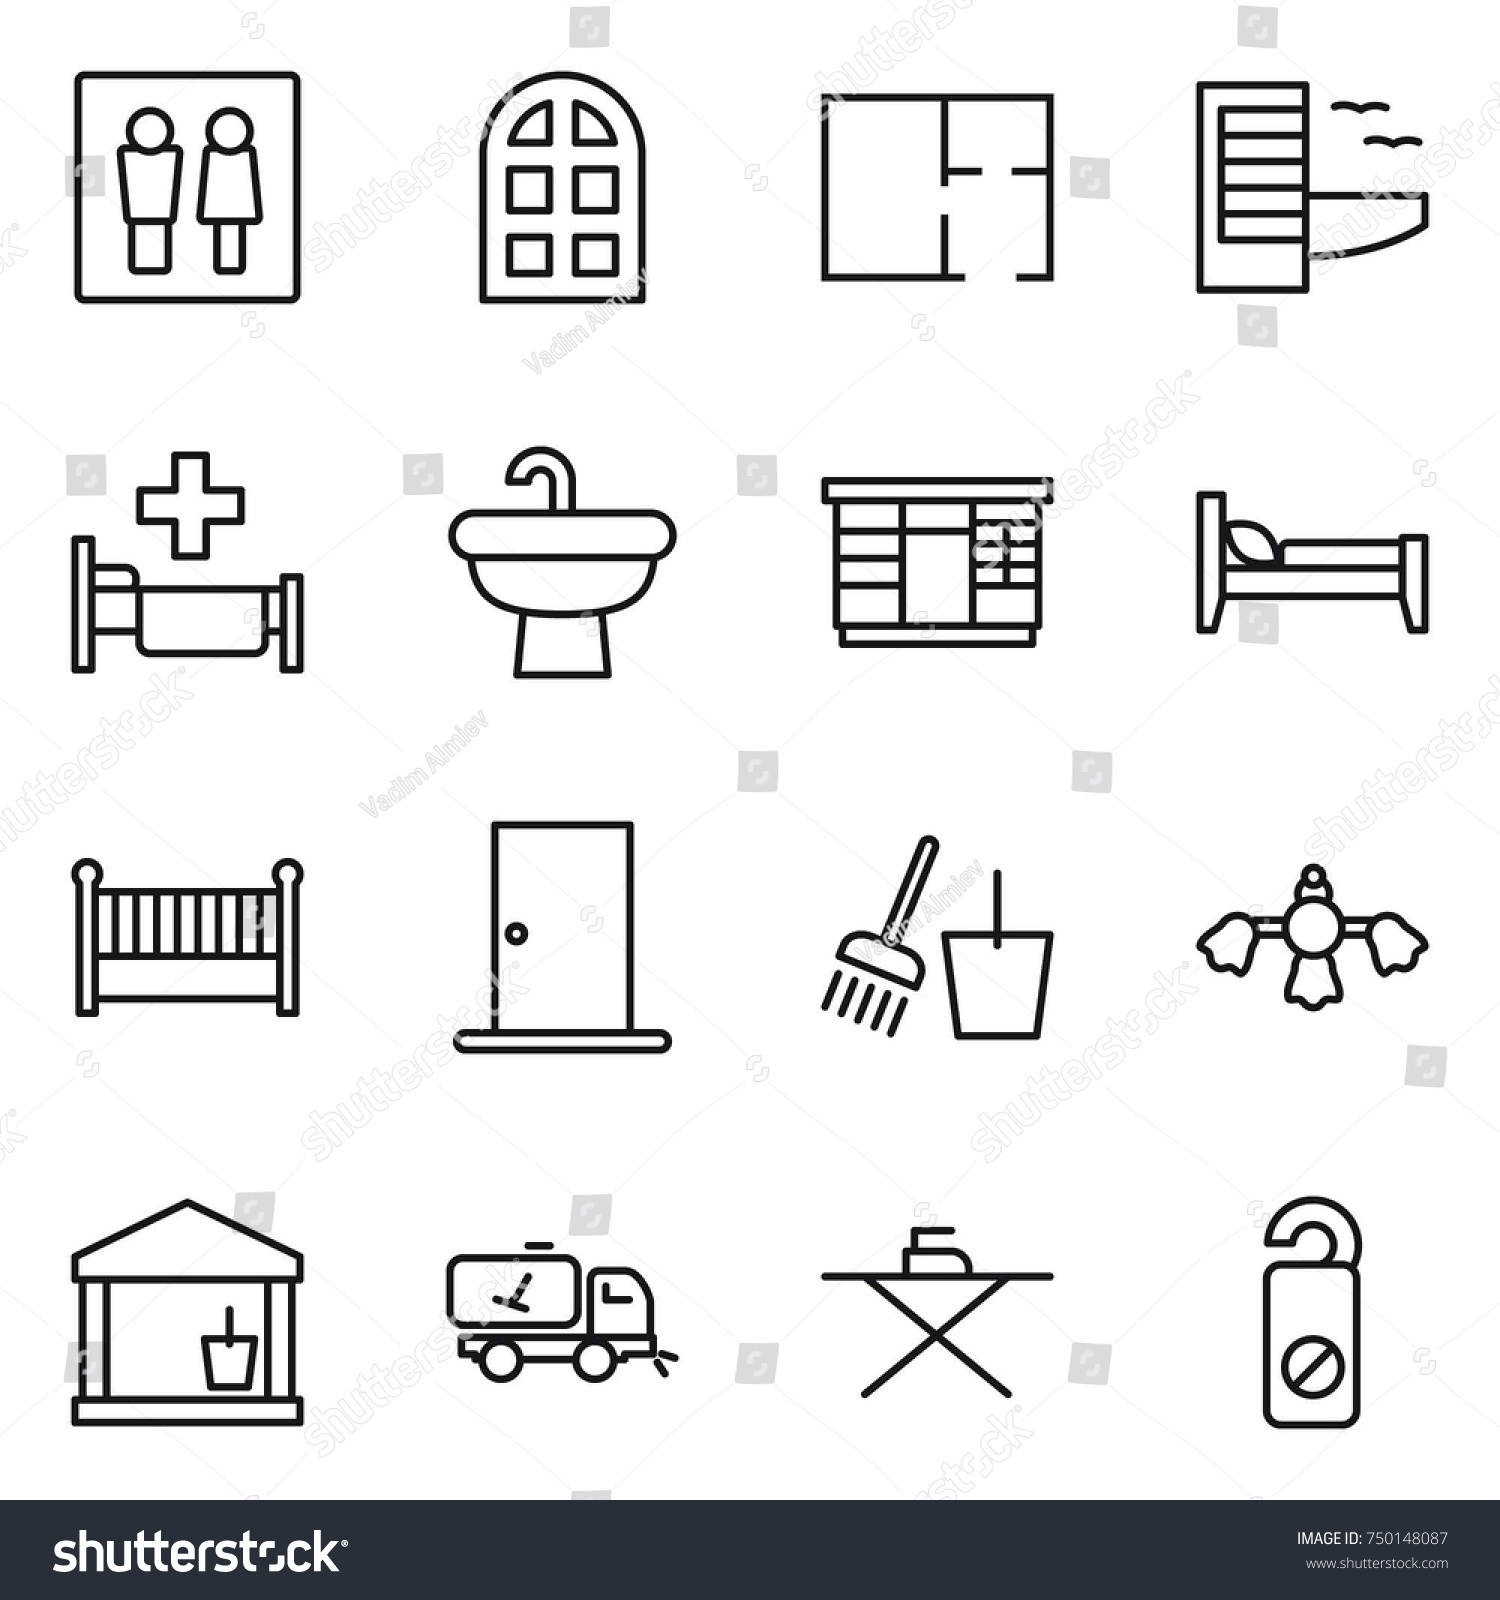 hight resolution of thin line icon set wc arch window plan hotel hospital